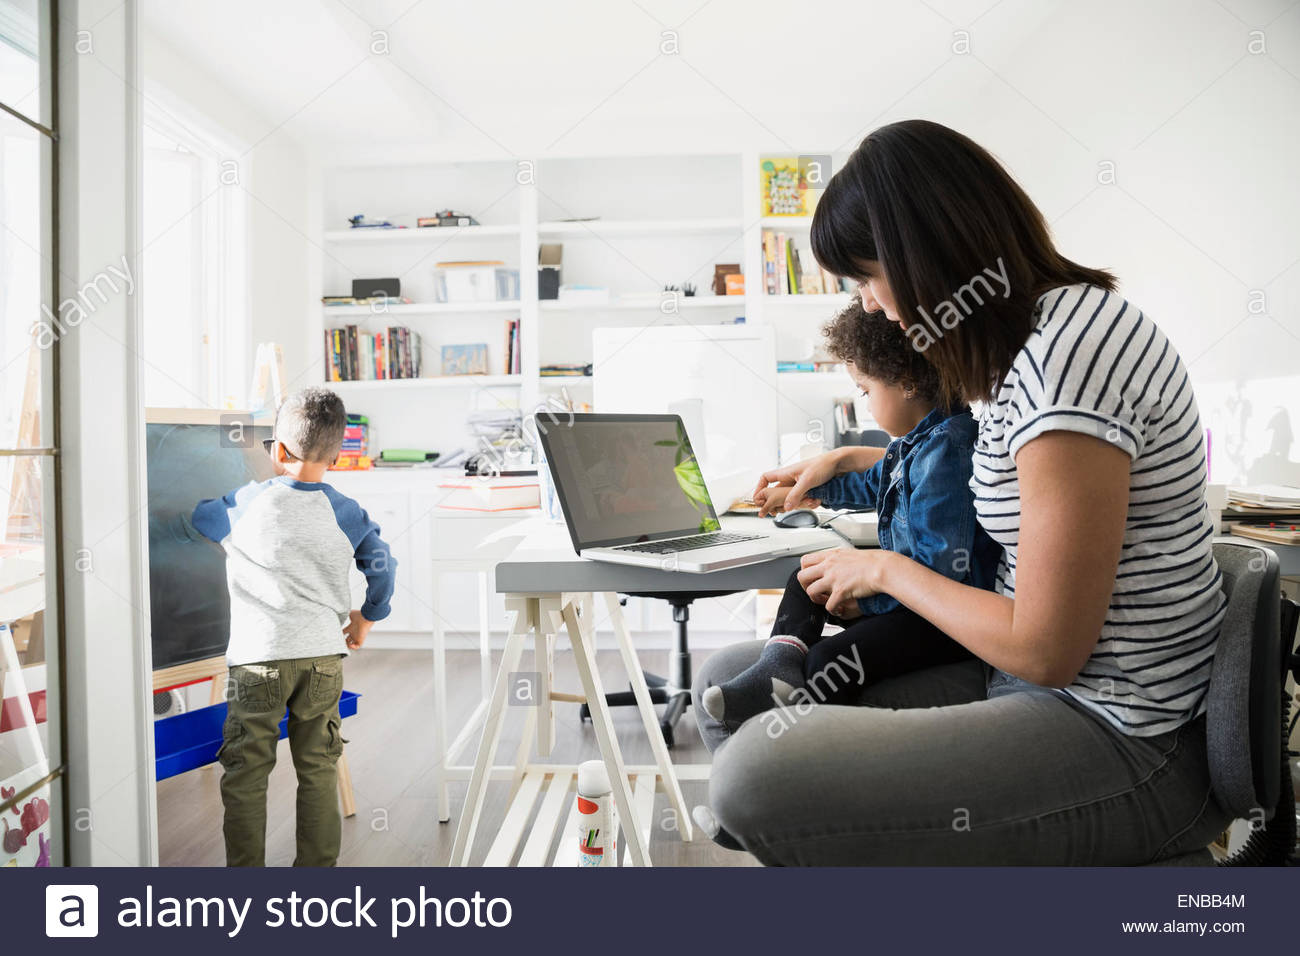 Mother and daughter at laptop in home office - Stock Image